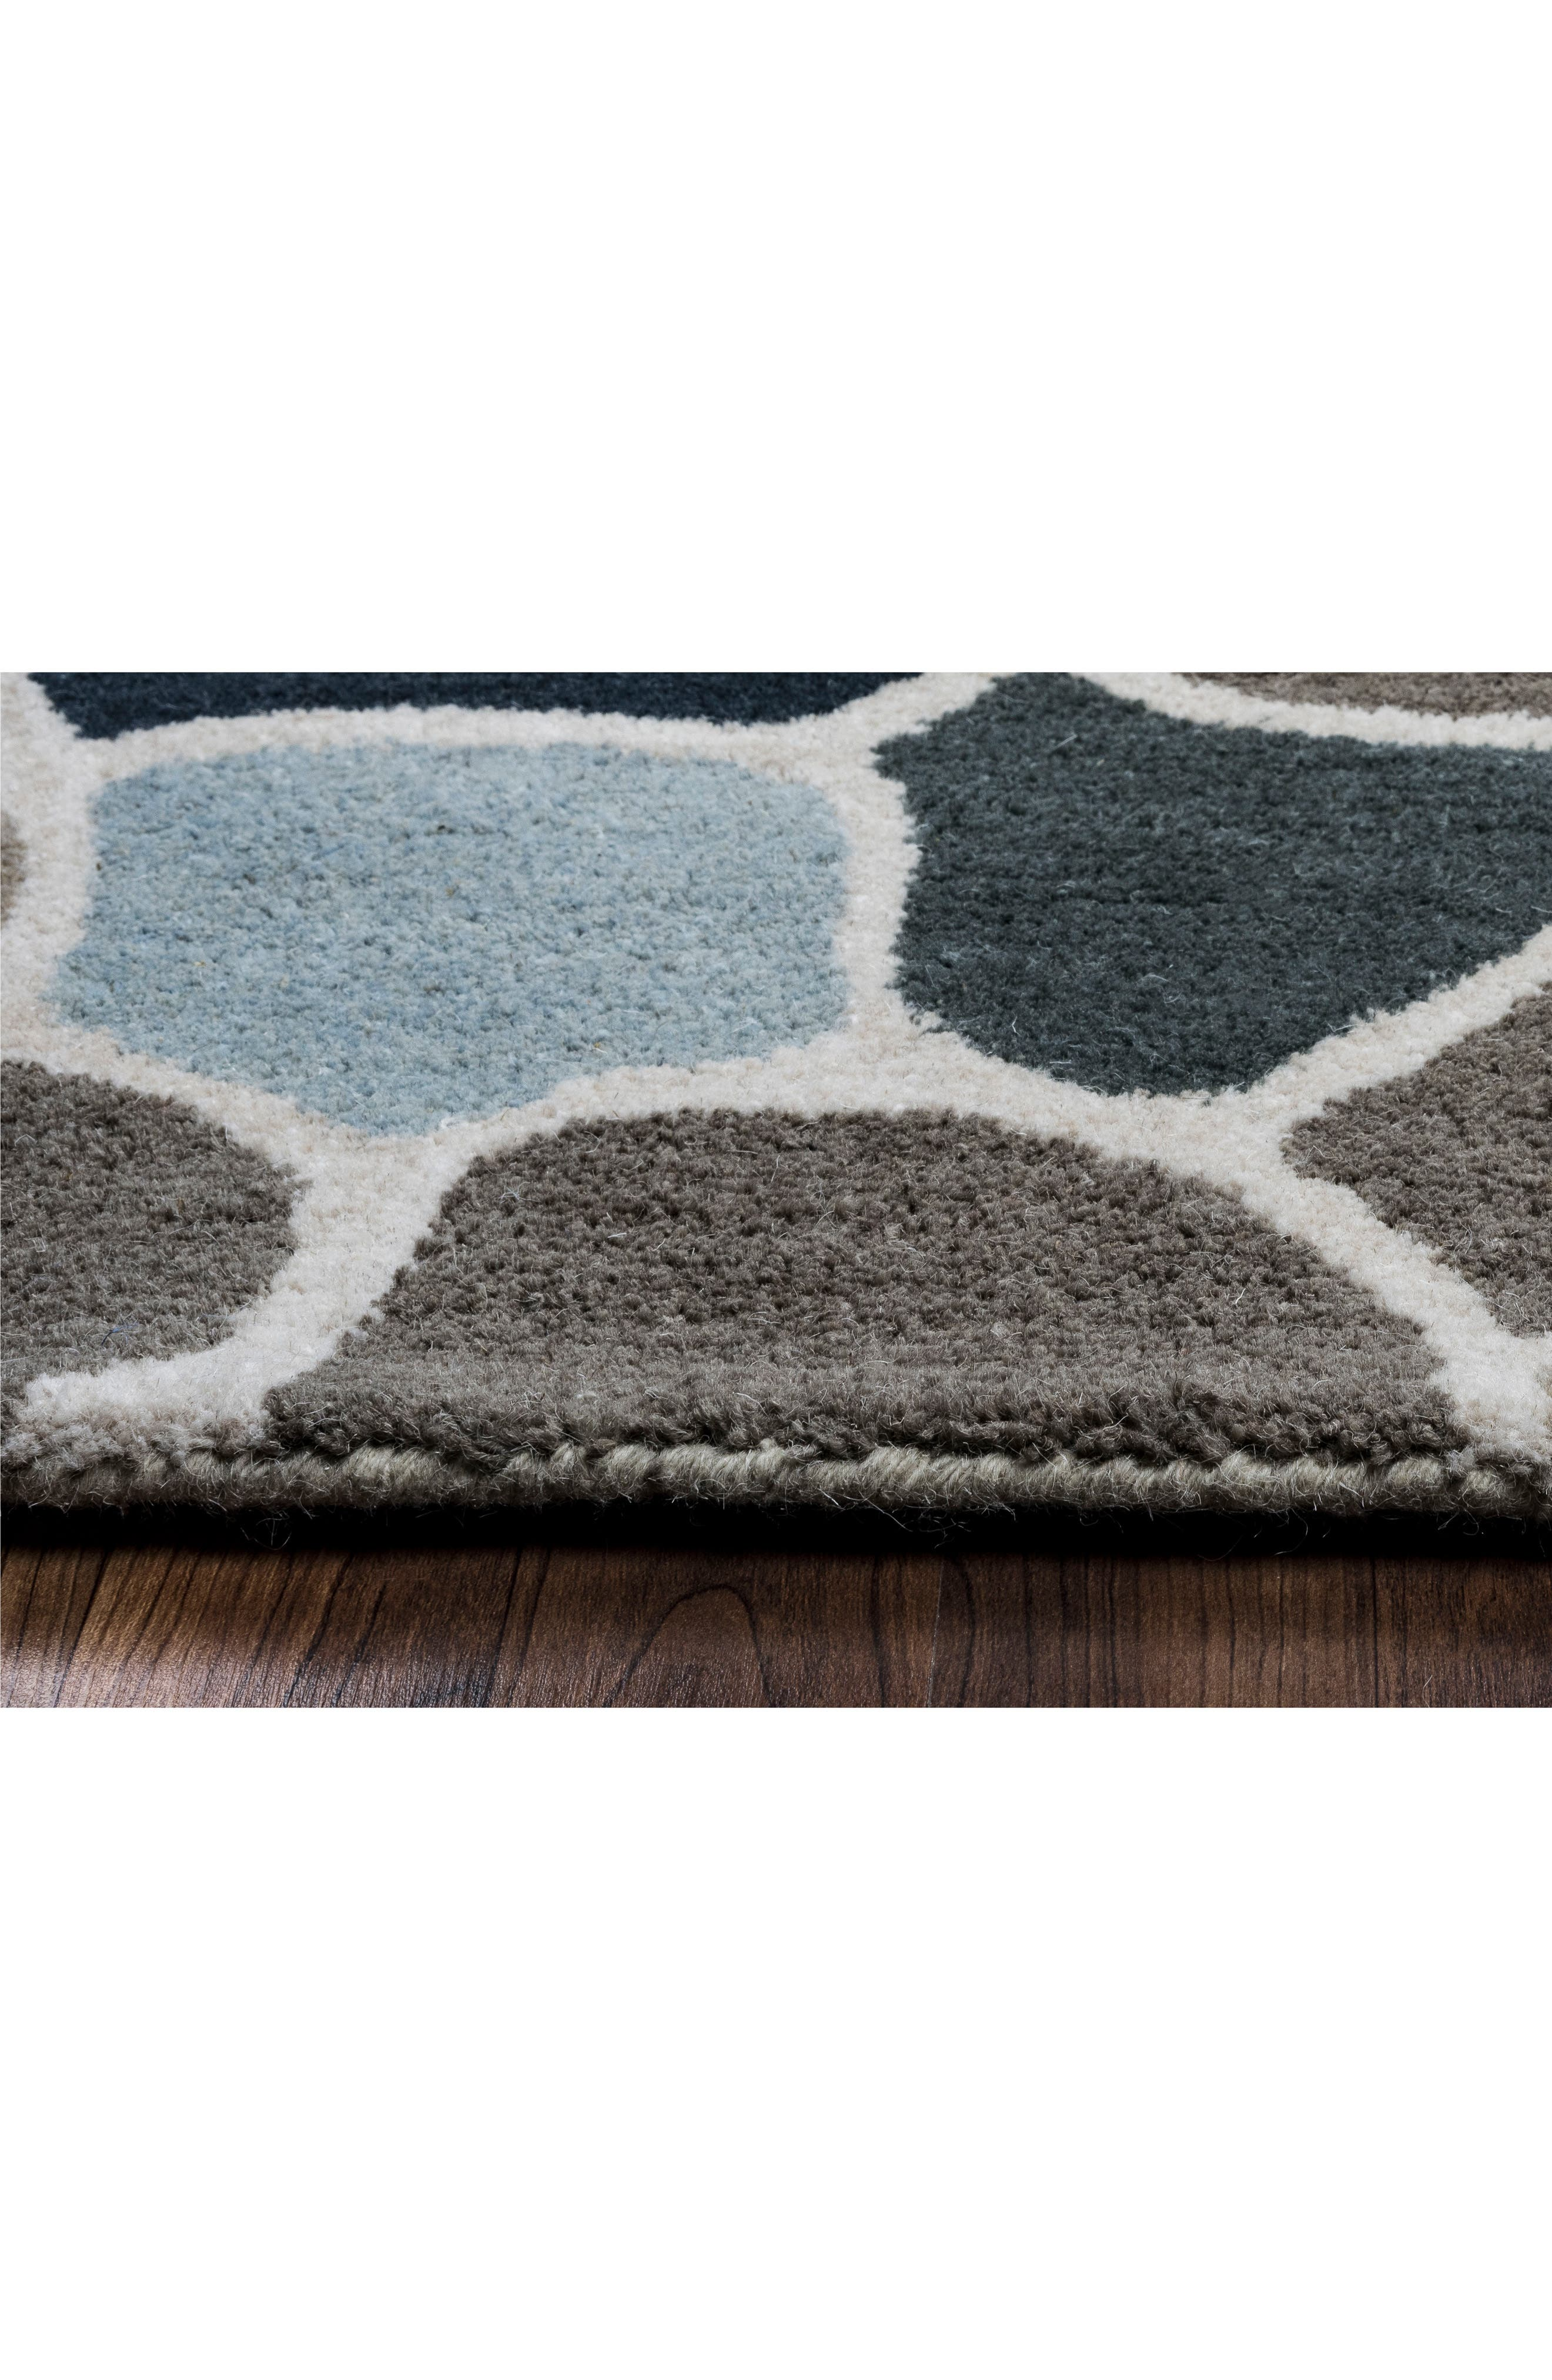 Alternate Image 3  - Rizzy Home Cobble Geo Hand Tufted Wool Area Rug